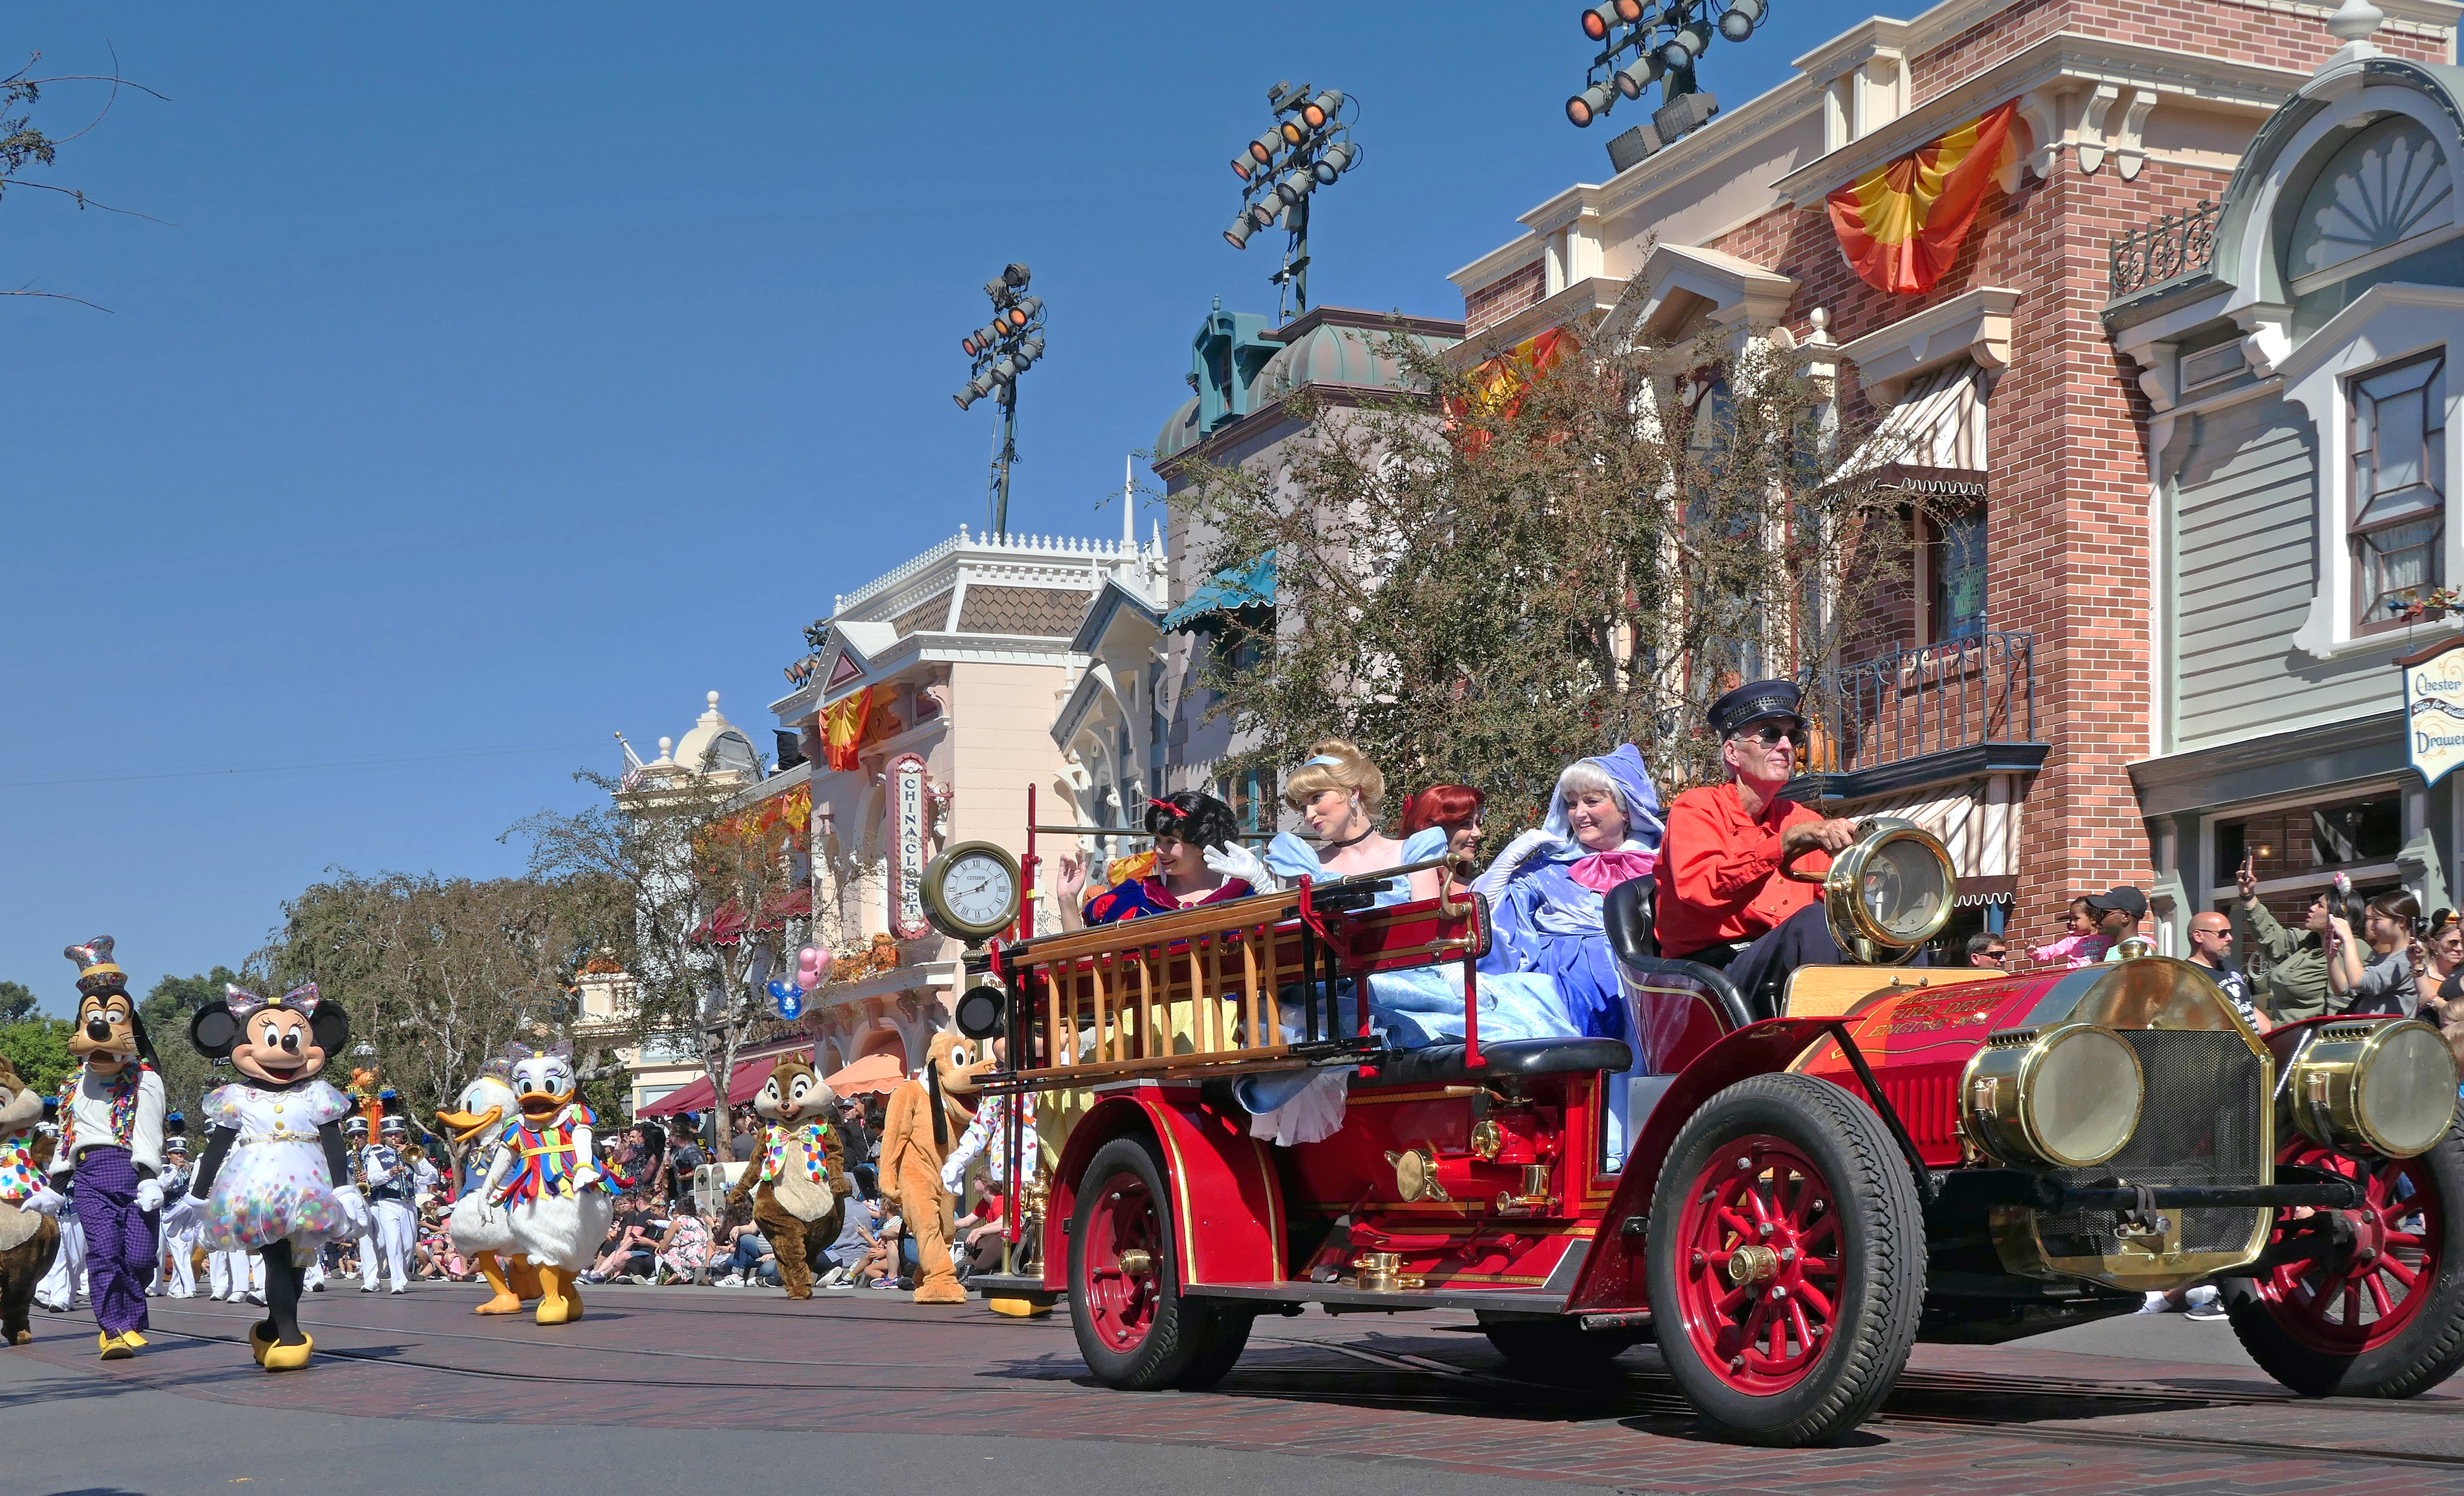 Free download high resolution image - free image free photo free stock image public domain picture -The Disney Parade